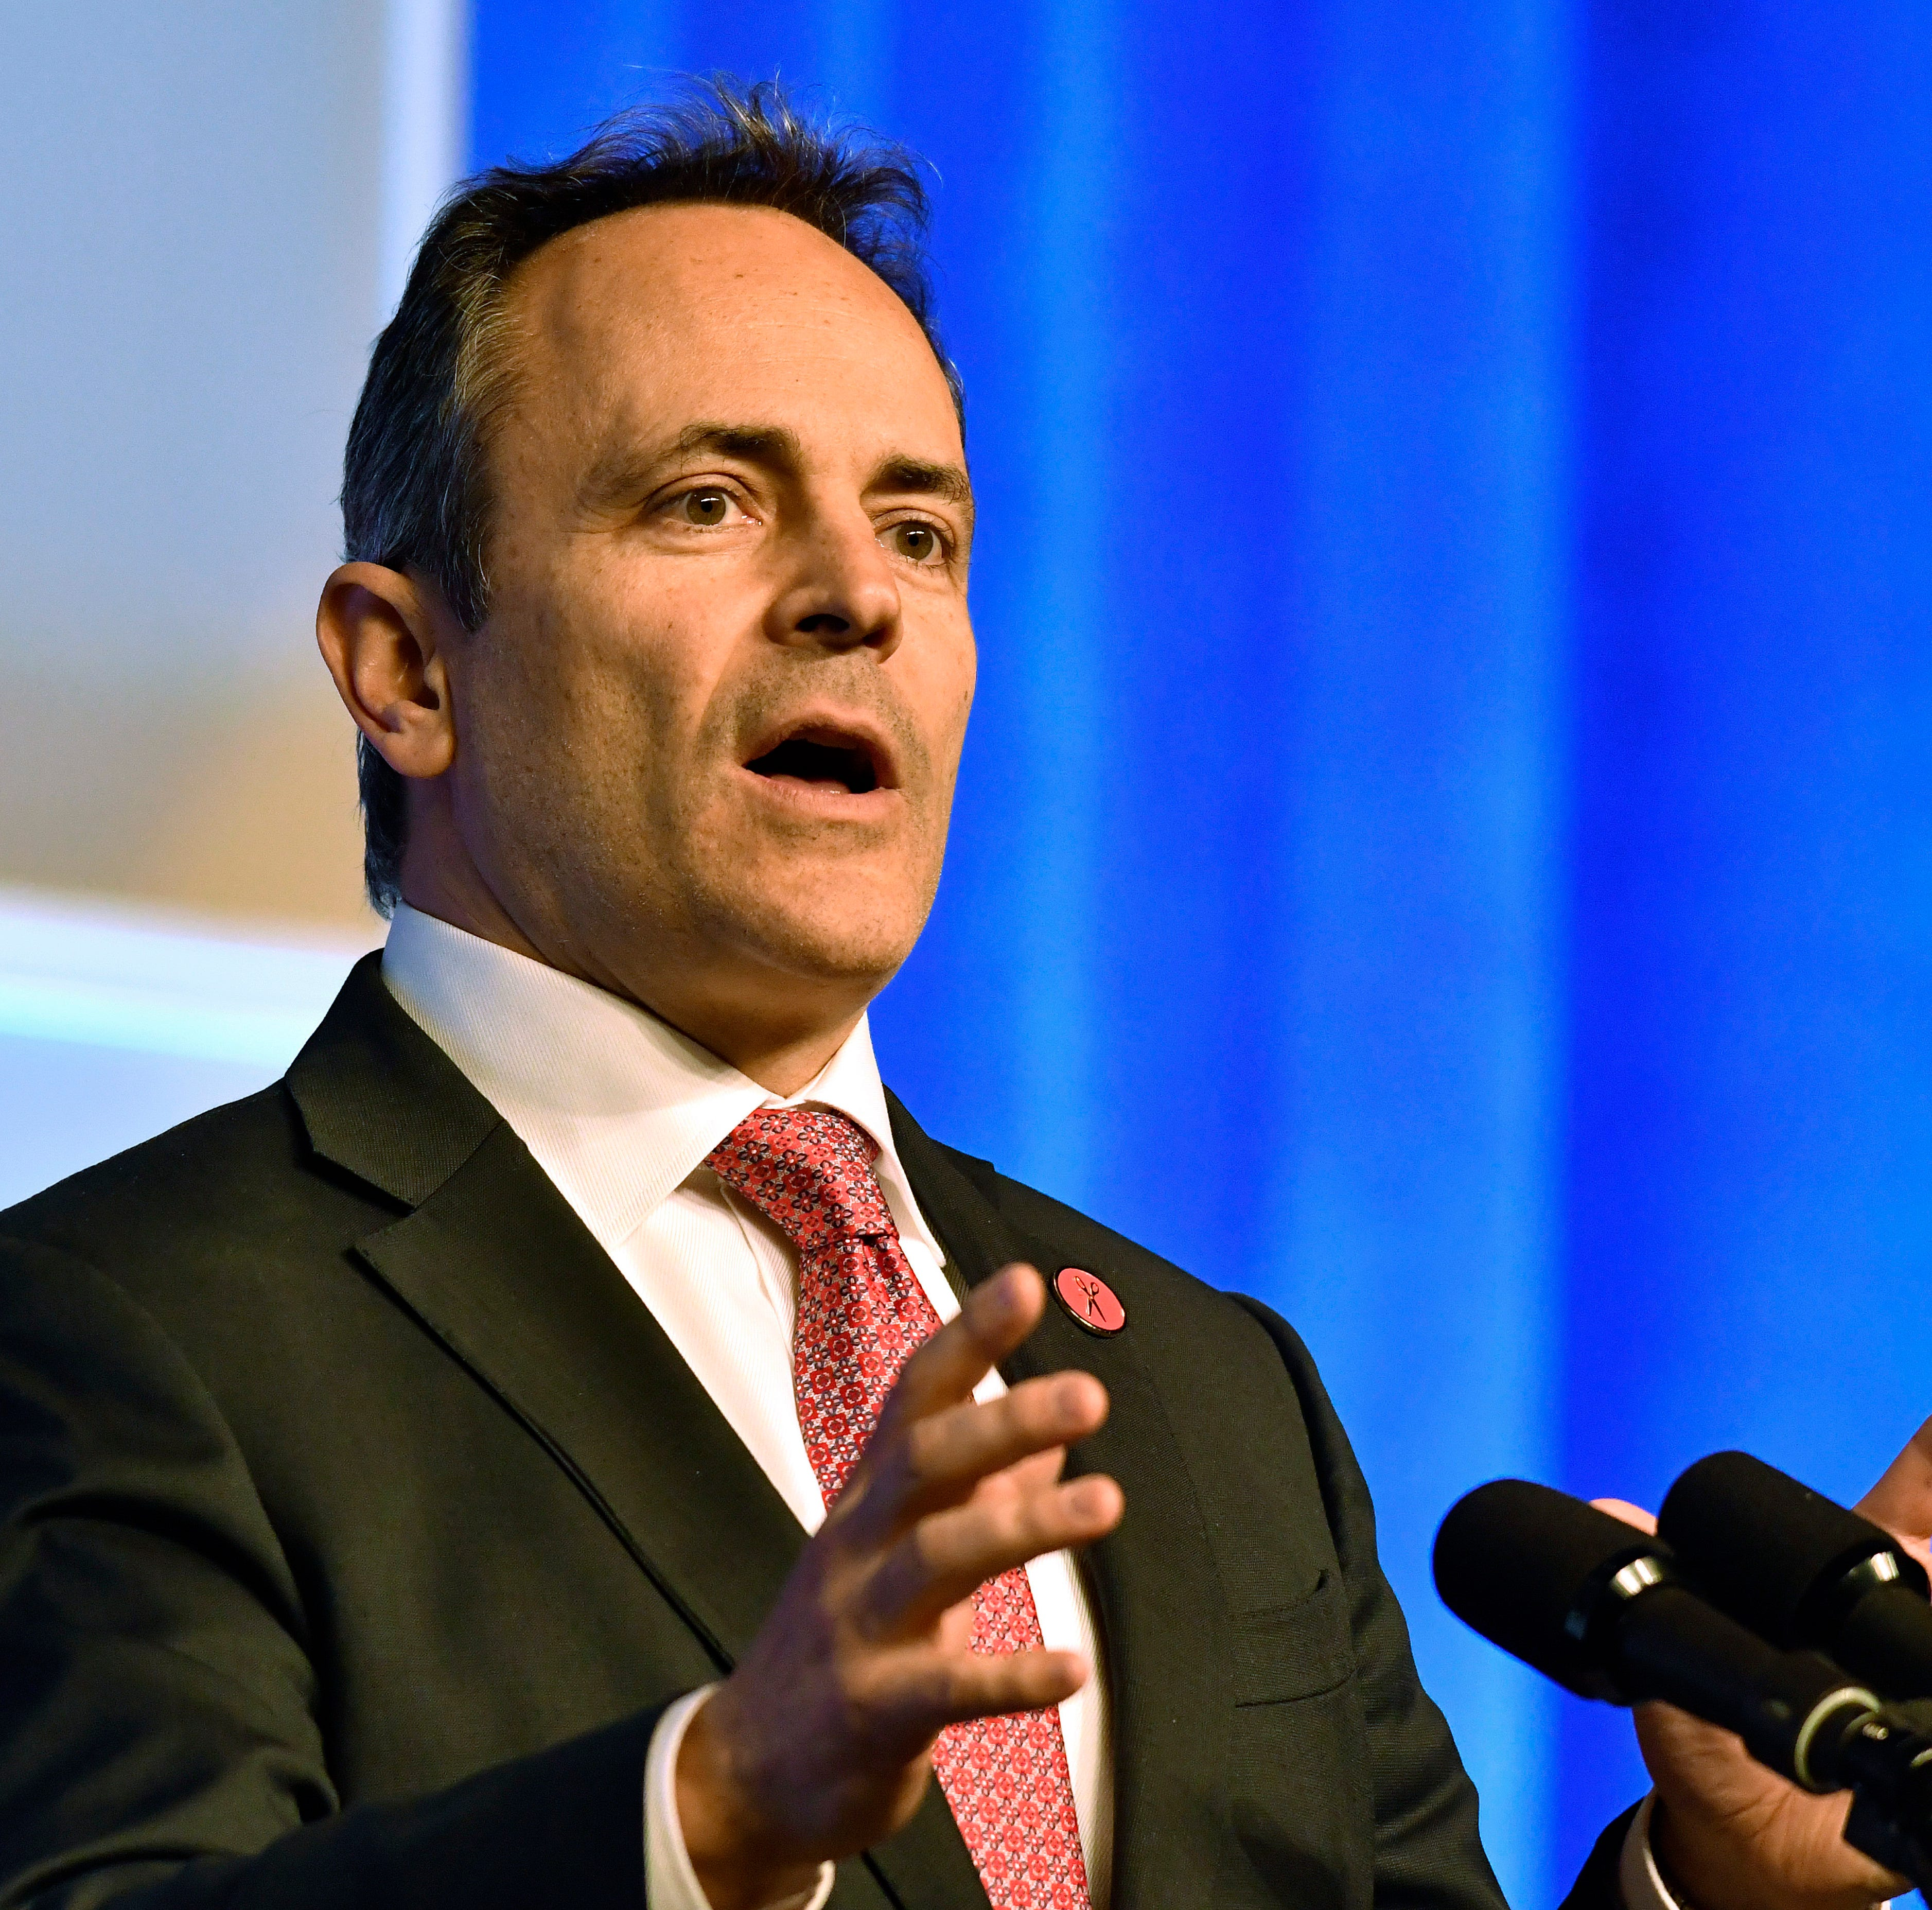 Bevin isn't serving Kentucky, especially not women and people of color